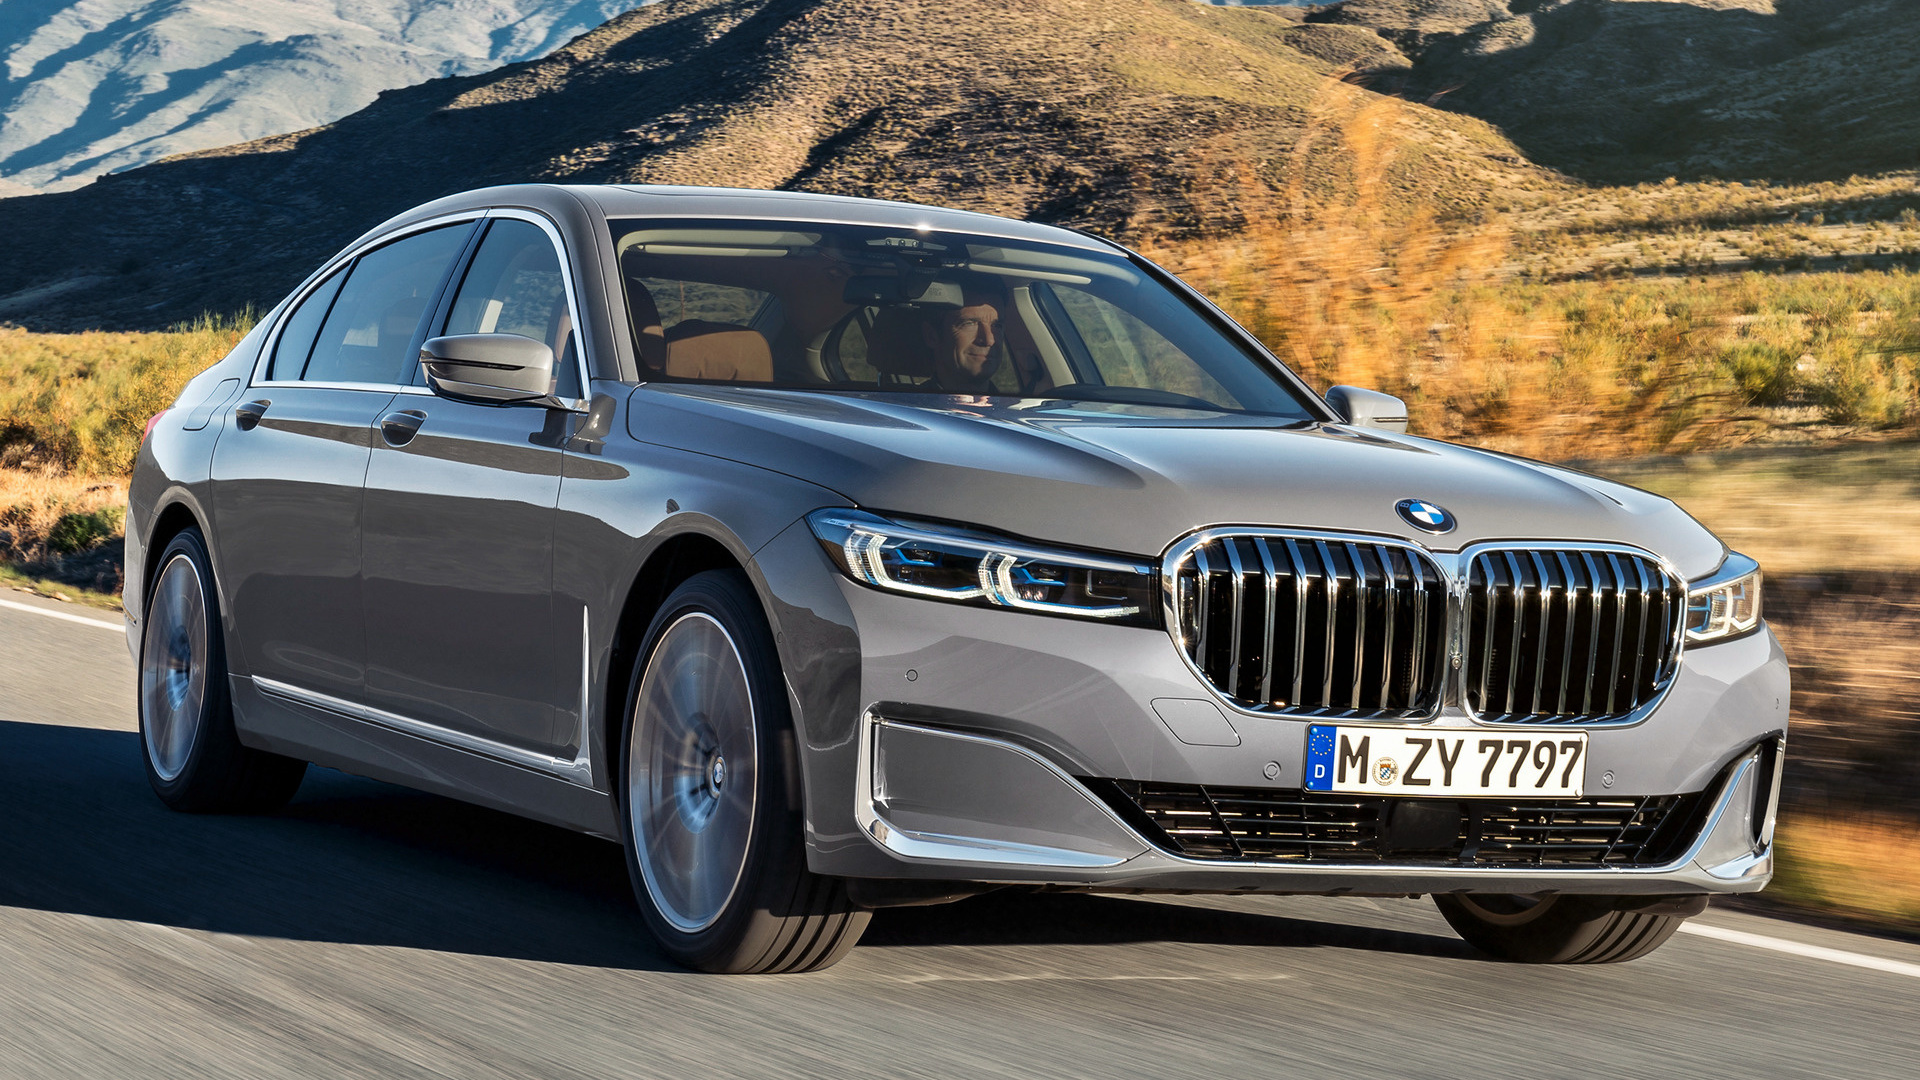 2019 BMW 7 Series [LWB] - Wallpapers and HD Images | Car Pixel